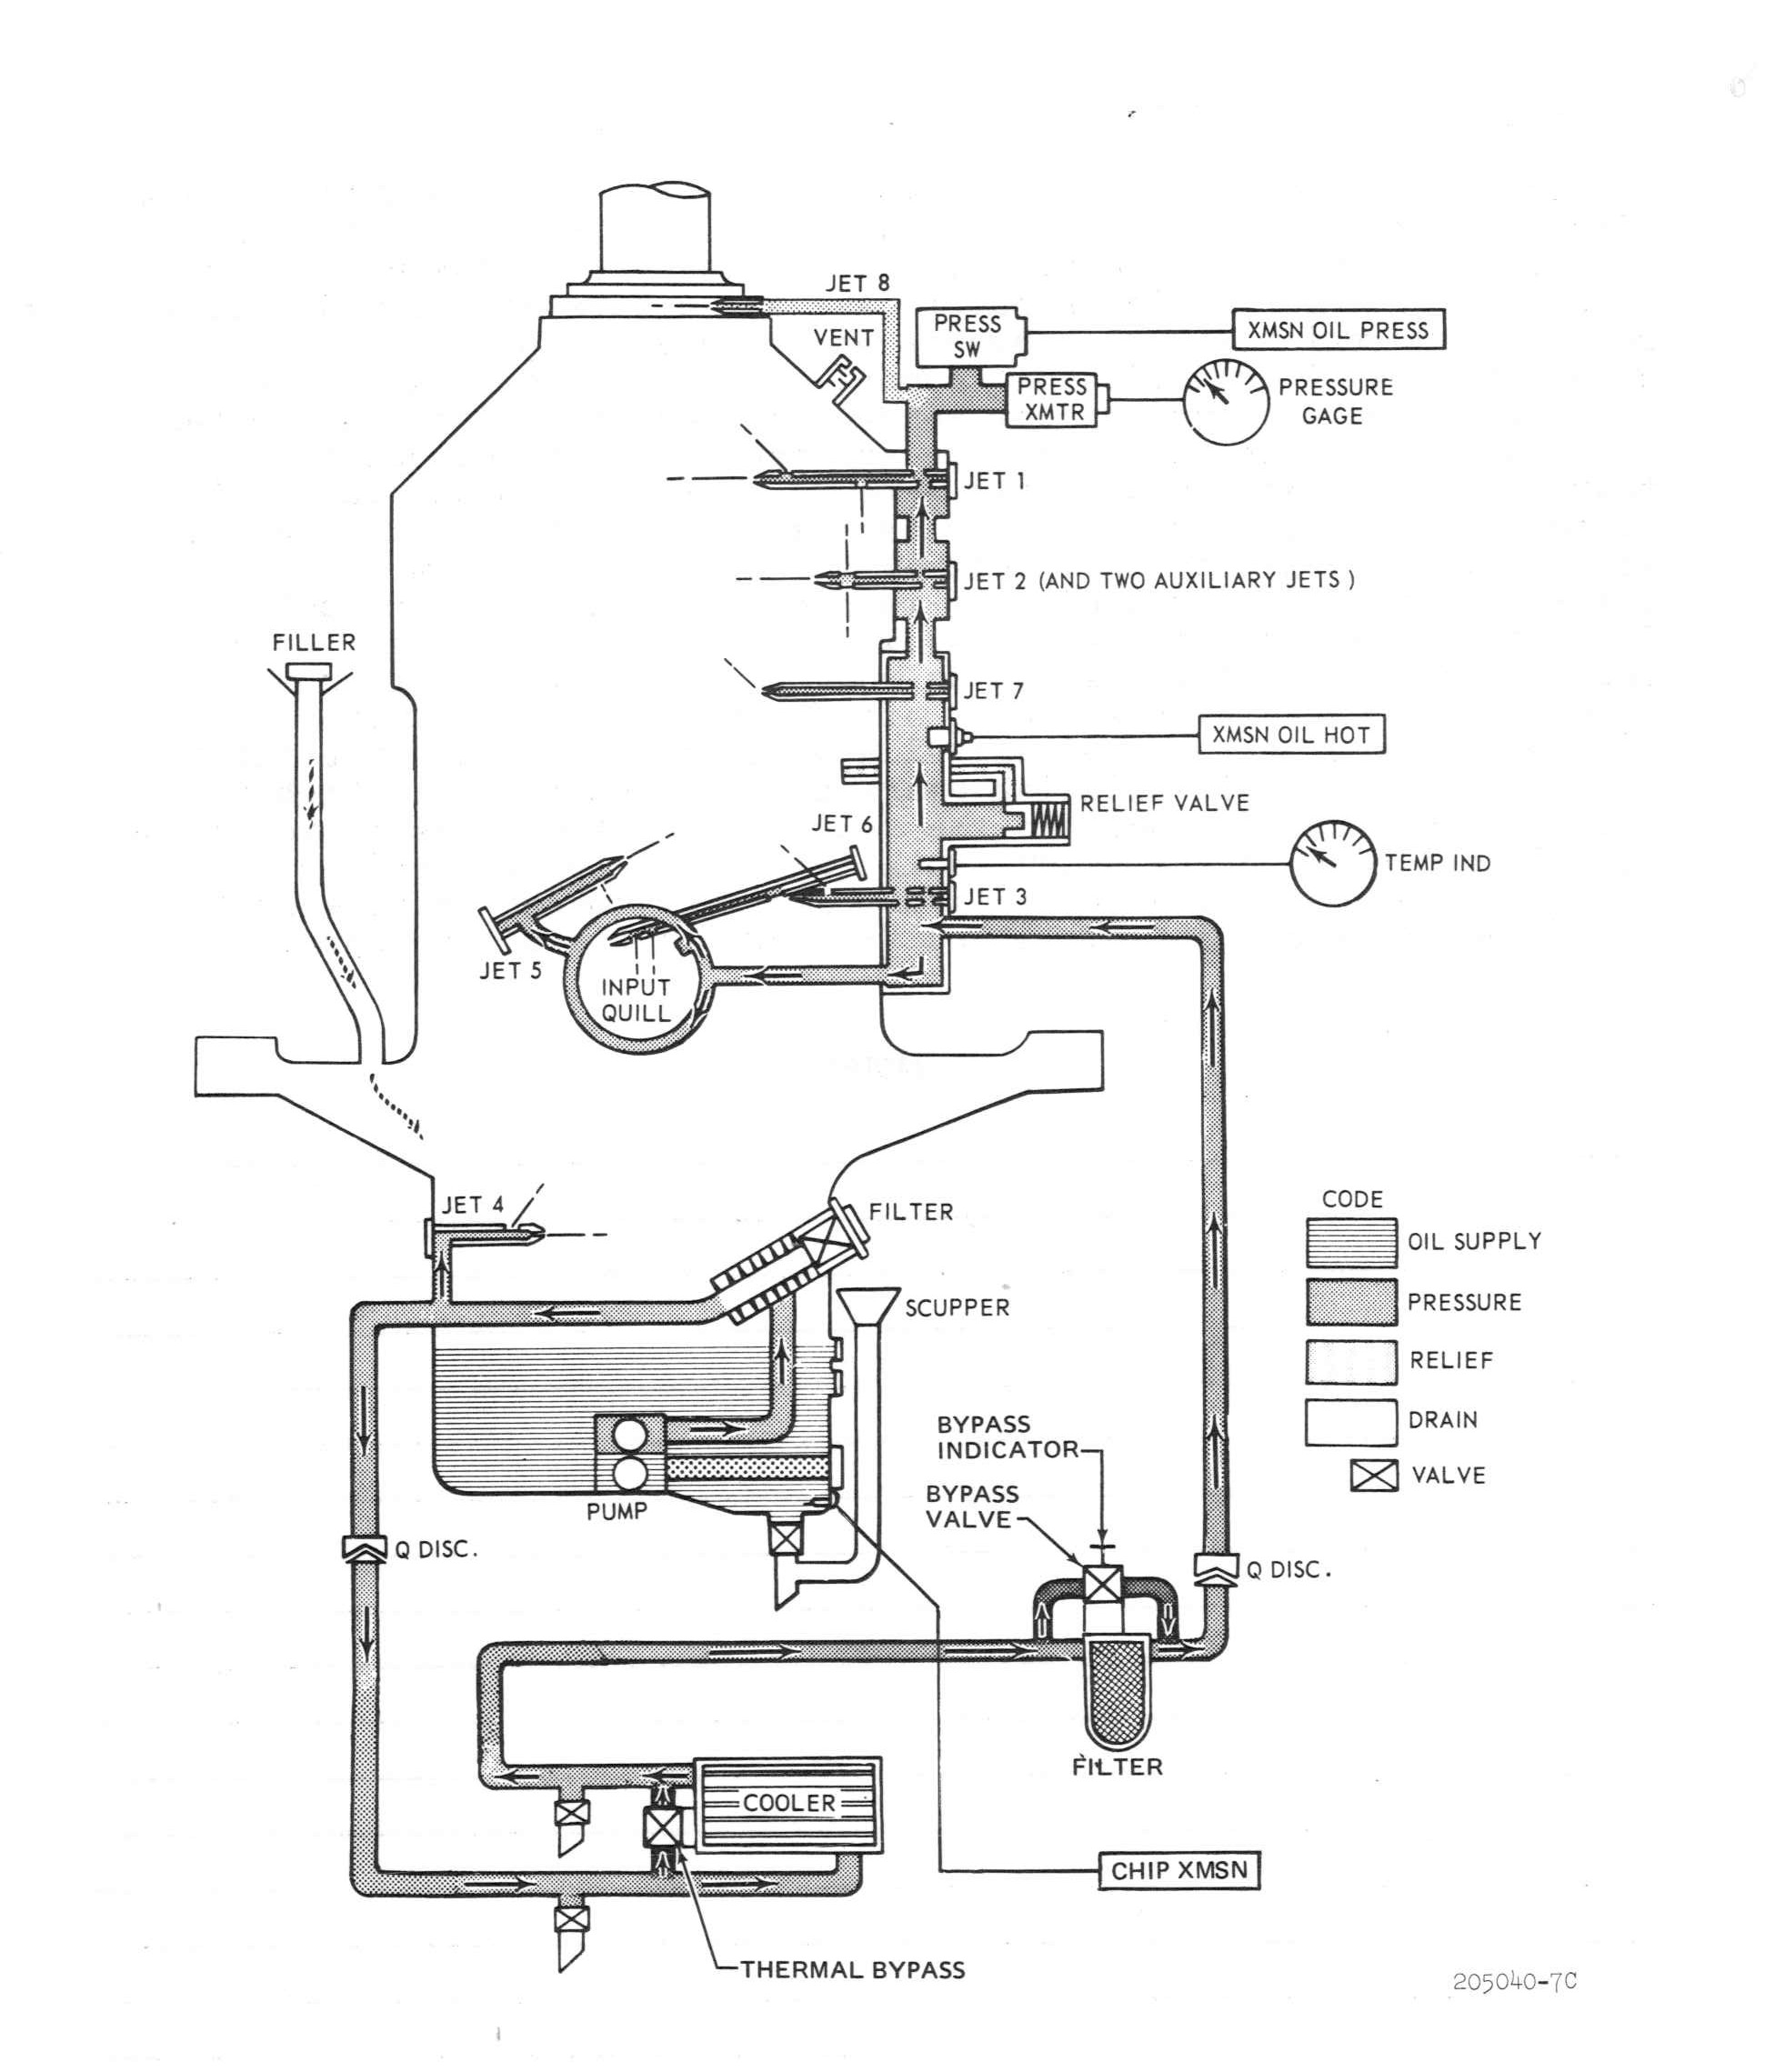 Bell Model 205a 1 Image Downloads Transmission Engine Diagram Oil System Schematic